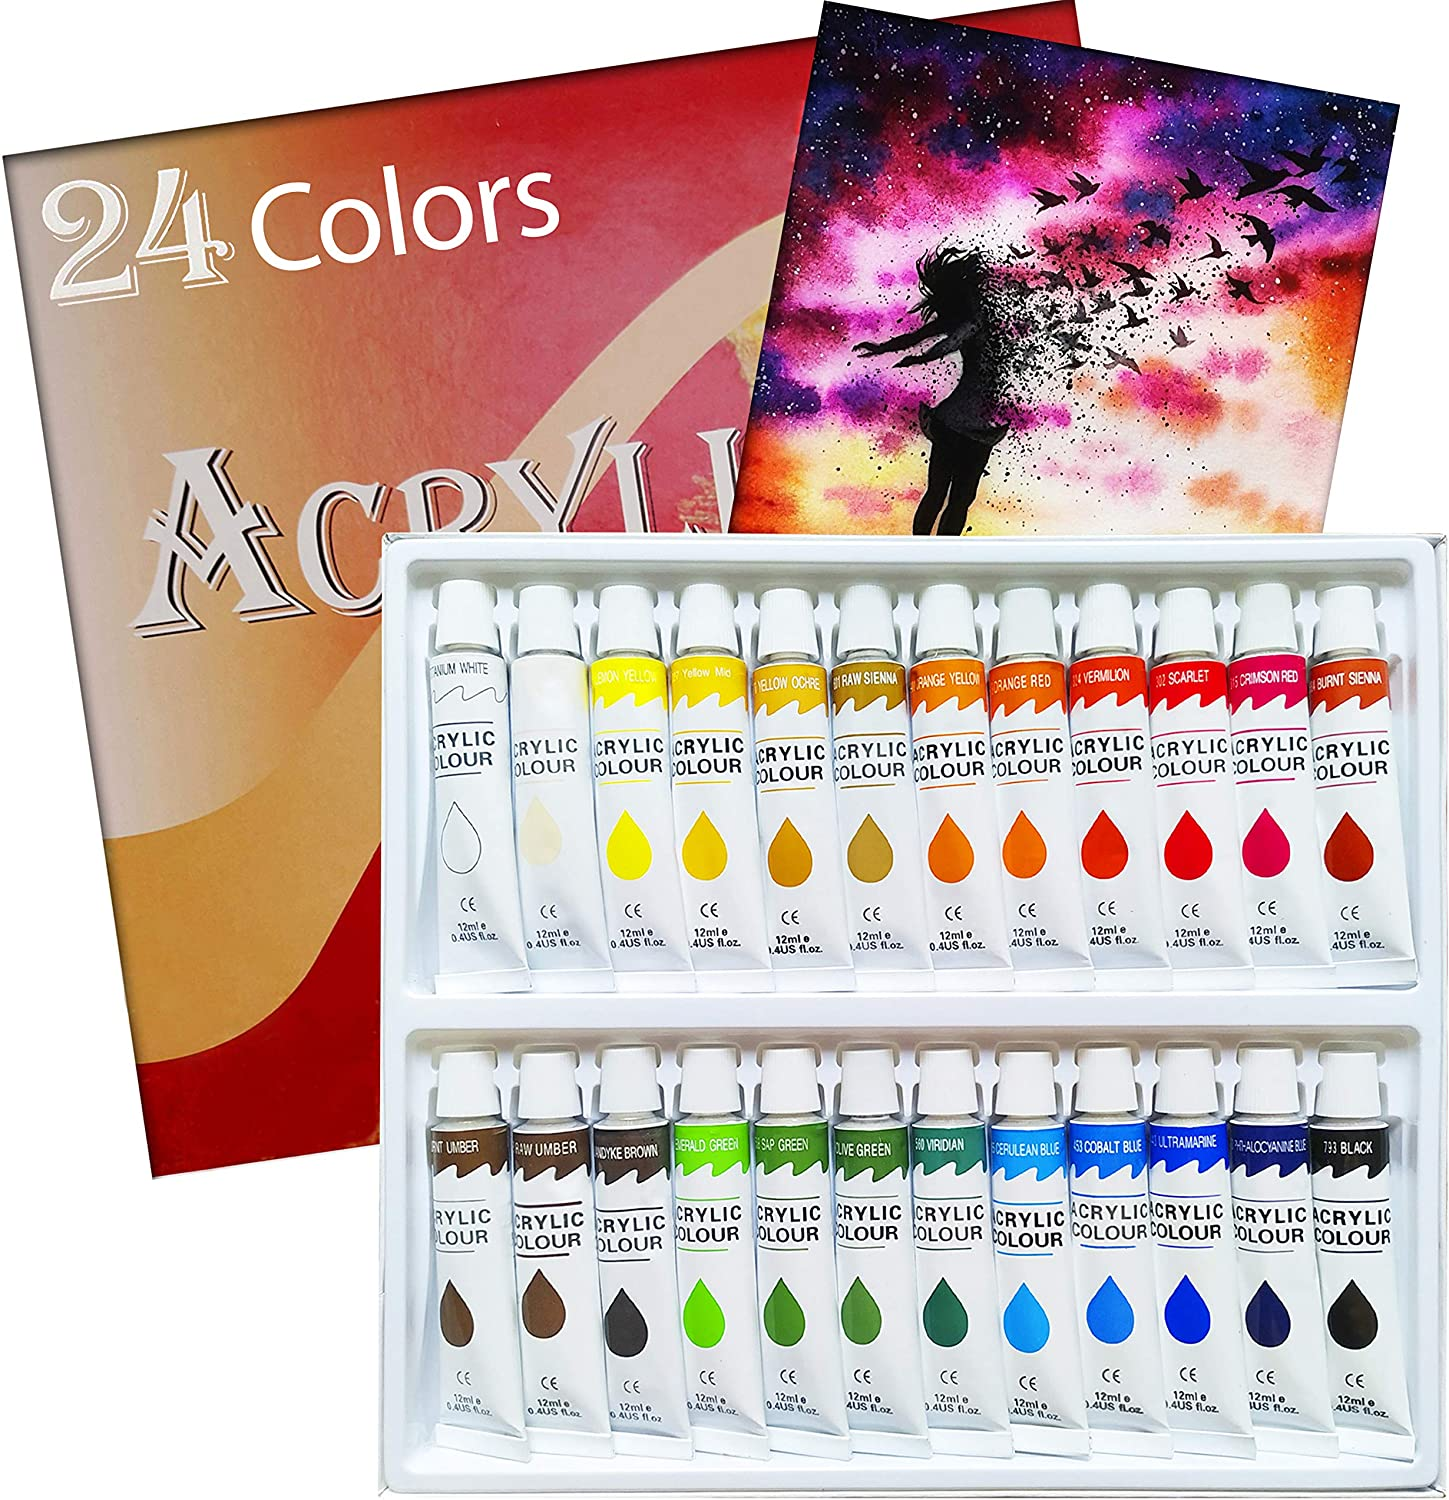 Amazon: Acrylic Paint Set 24 Colors Tubes Acrylic Paints, Just $8.02 (Reg $22.92) after code!